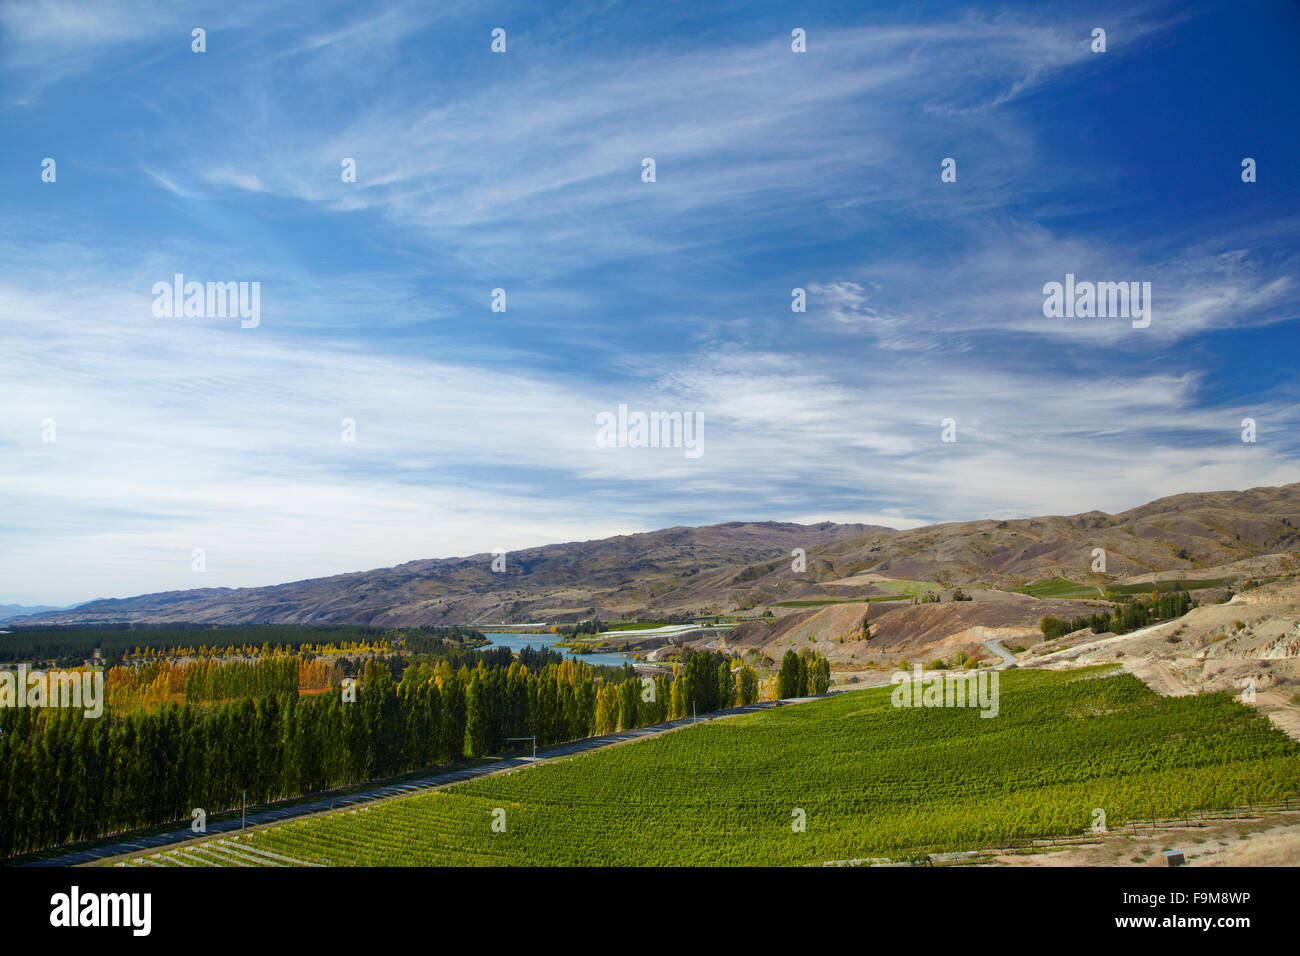 Mt Difficulty Vineyards and orchards, Bannockburn, near Cromwell, Central Otago, South Island, New Zealand Stock Photo